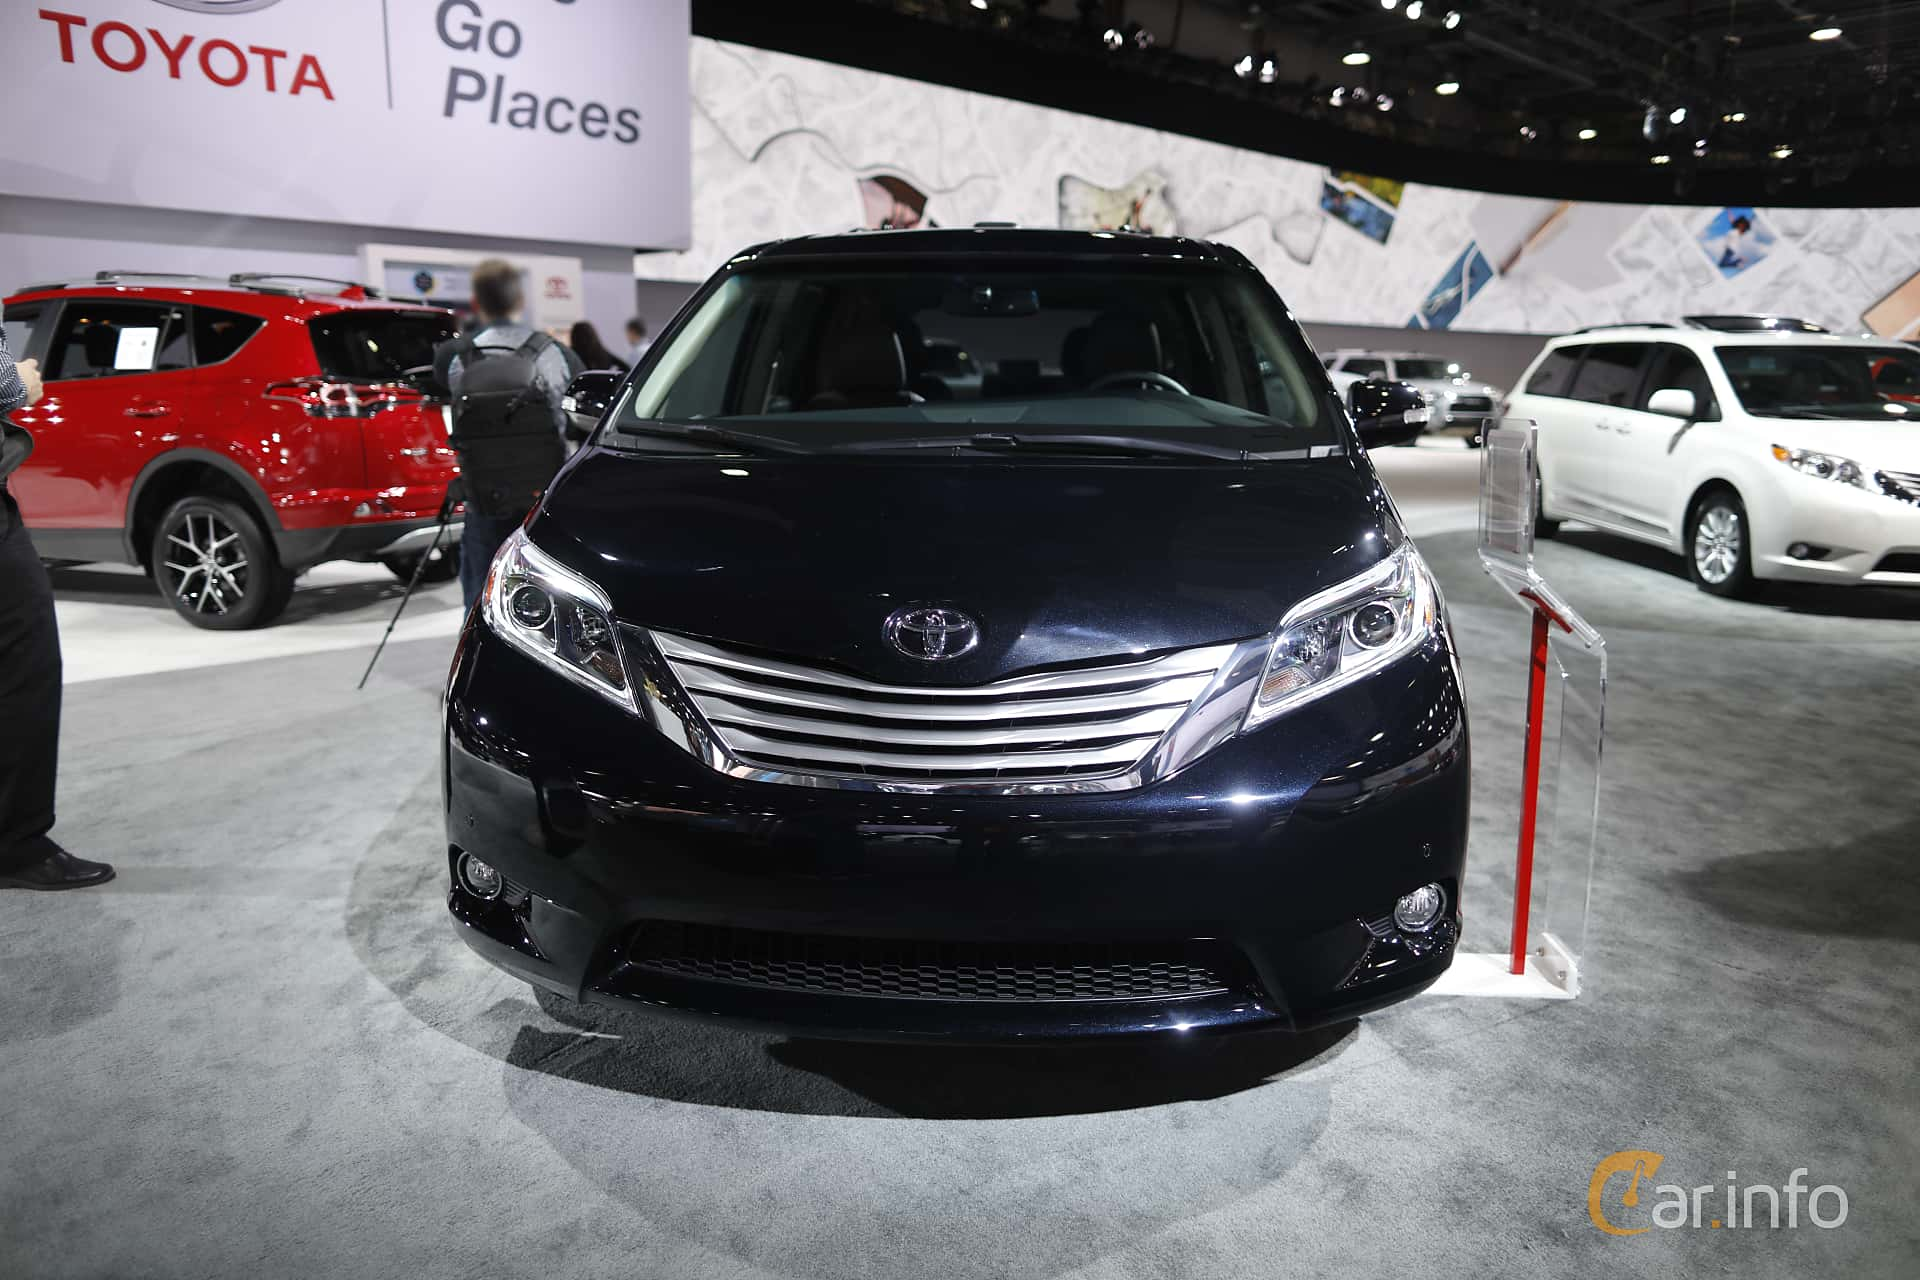 Toyota Sienna 3.5 V6 AWD Automatic, 301hp, 2017 at North American International Auto Show 2017